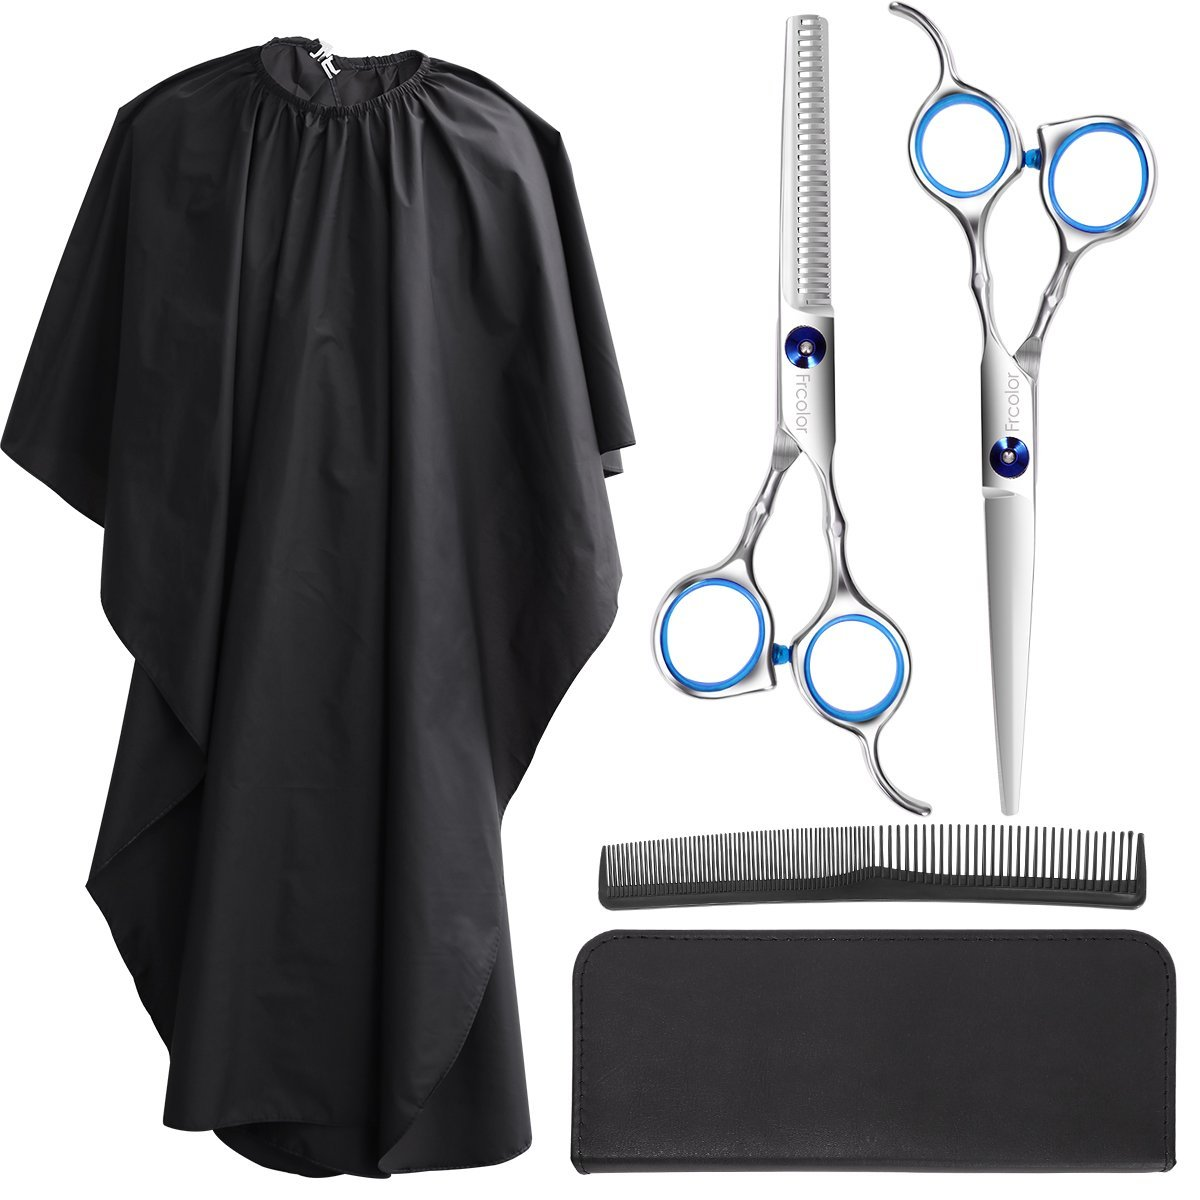 Frcolor Hair Cutting Scissors Set, Professional Haircutting Scissors Barber Thinning Scissors Hairdressing Shears Set with Black Leather Case and Salon Cape by FRCOLOR